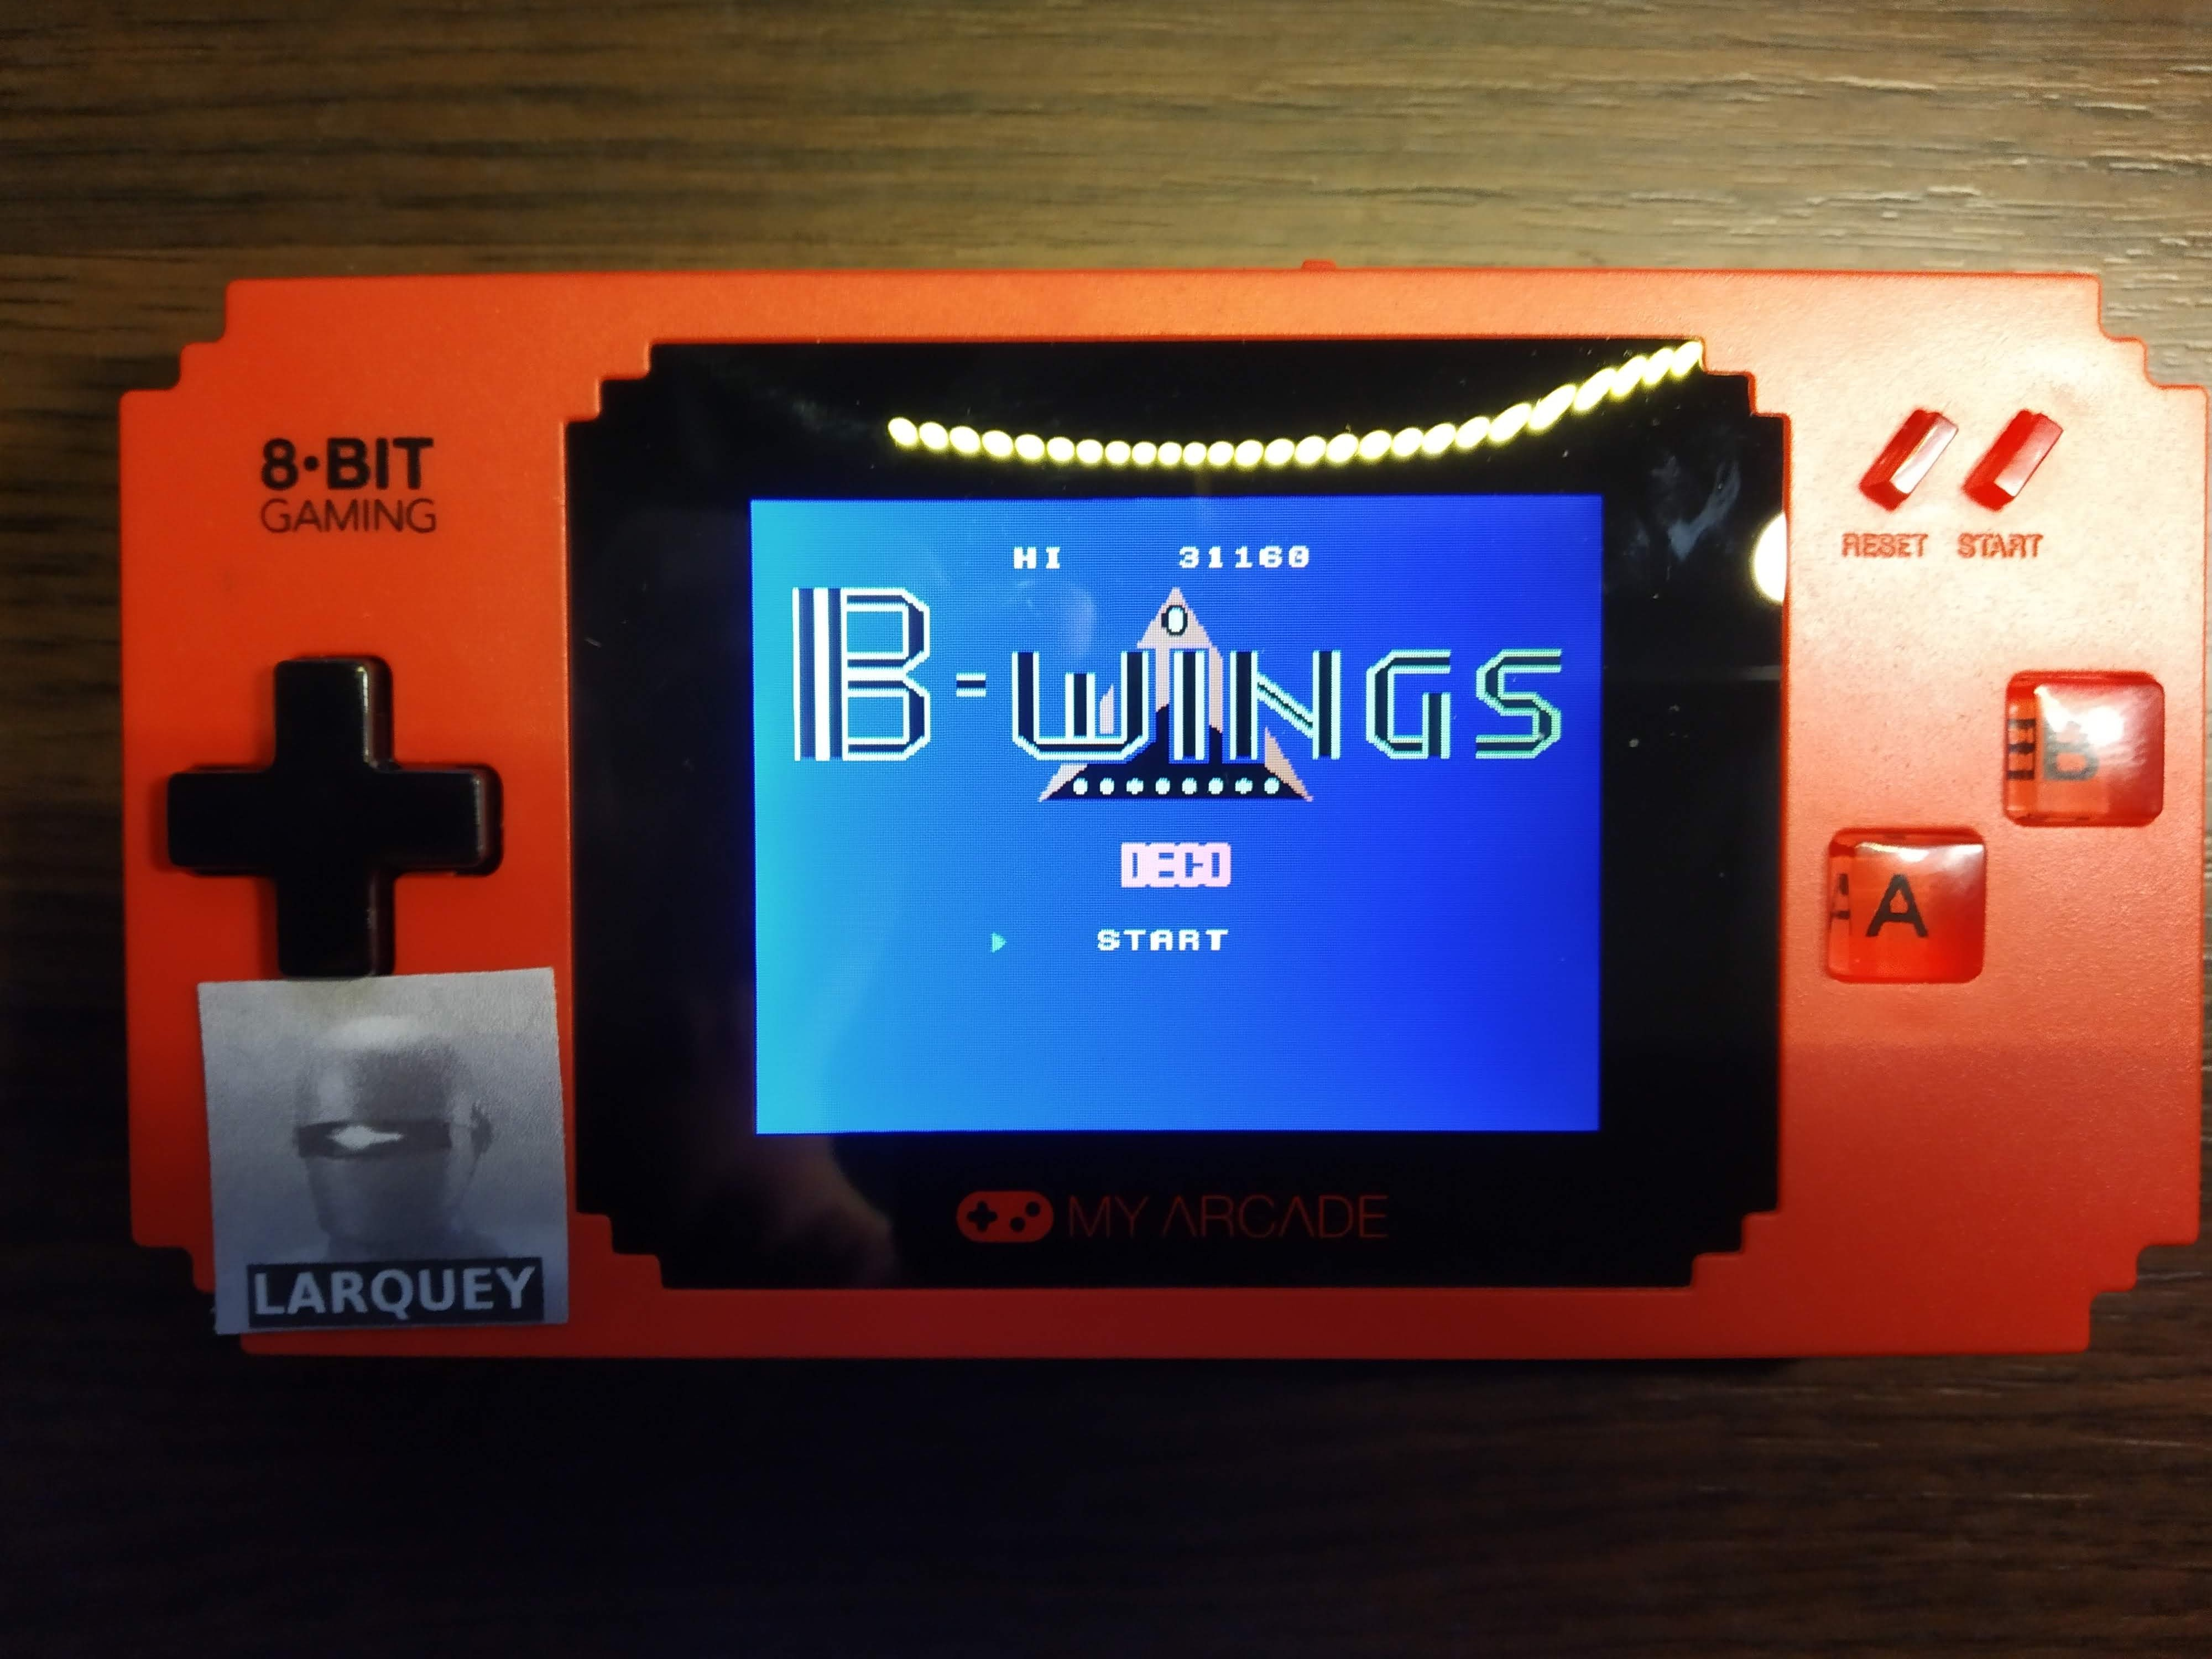 Larquey: My Arcade: B-Wings (Dedicated Handheld) 31,160 points on 2019-12-08 11:33:03